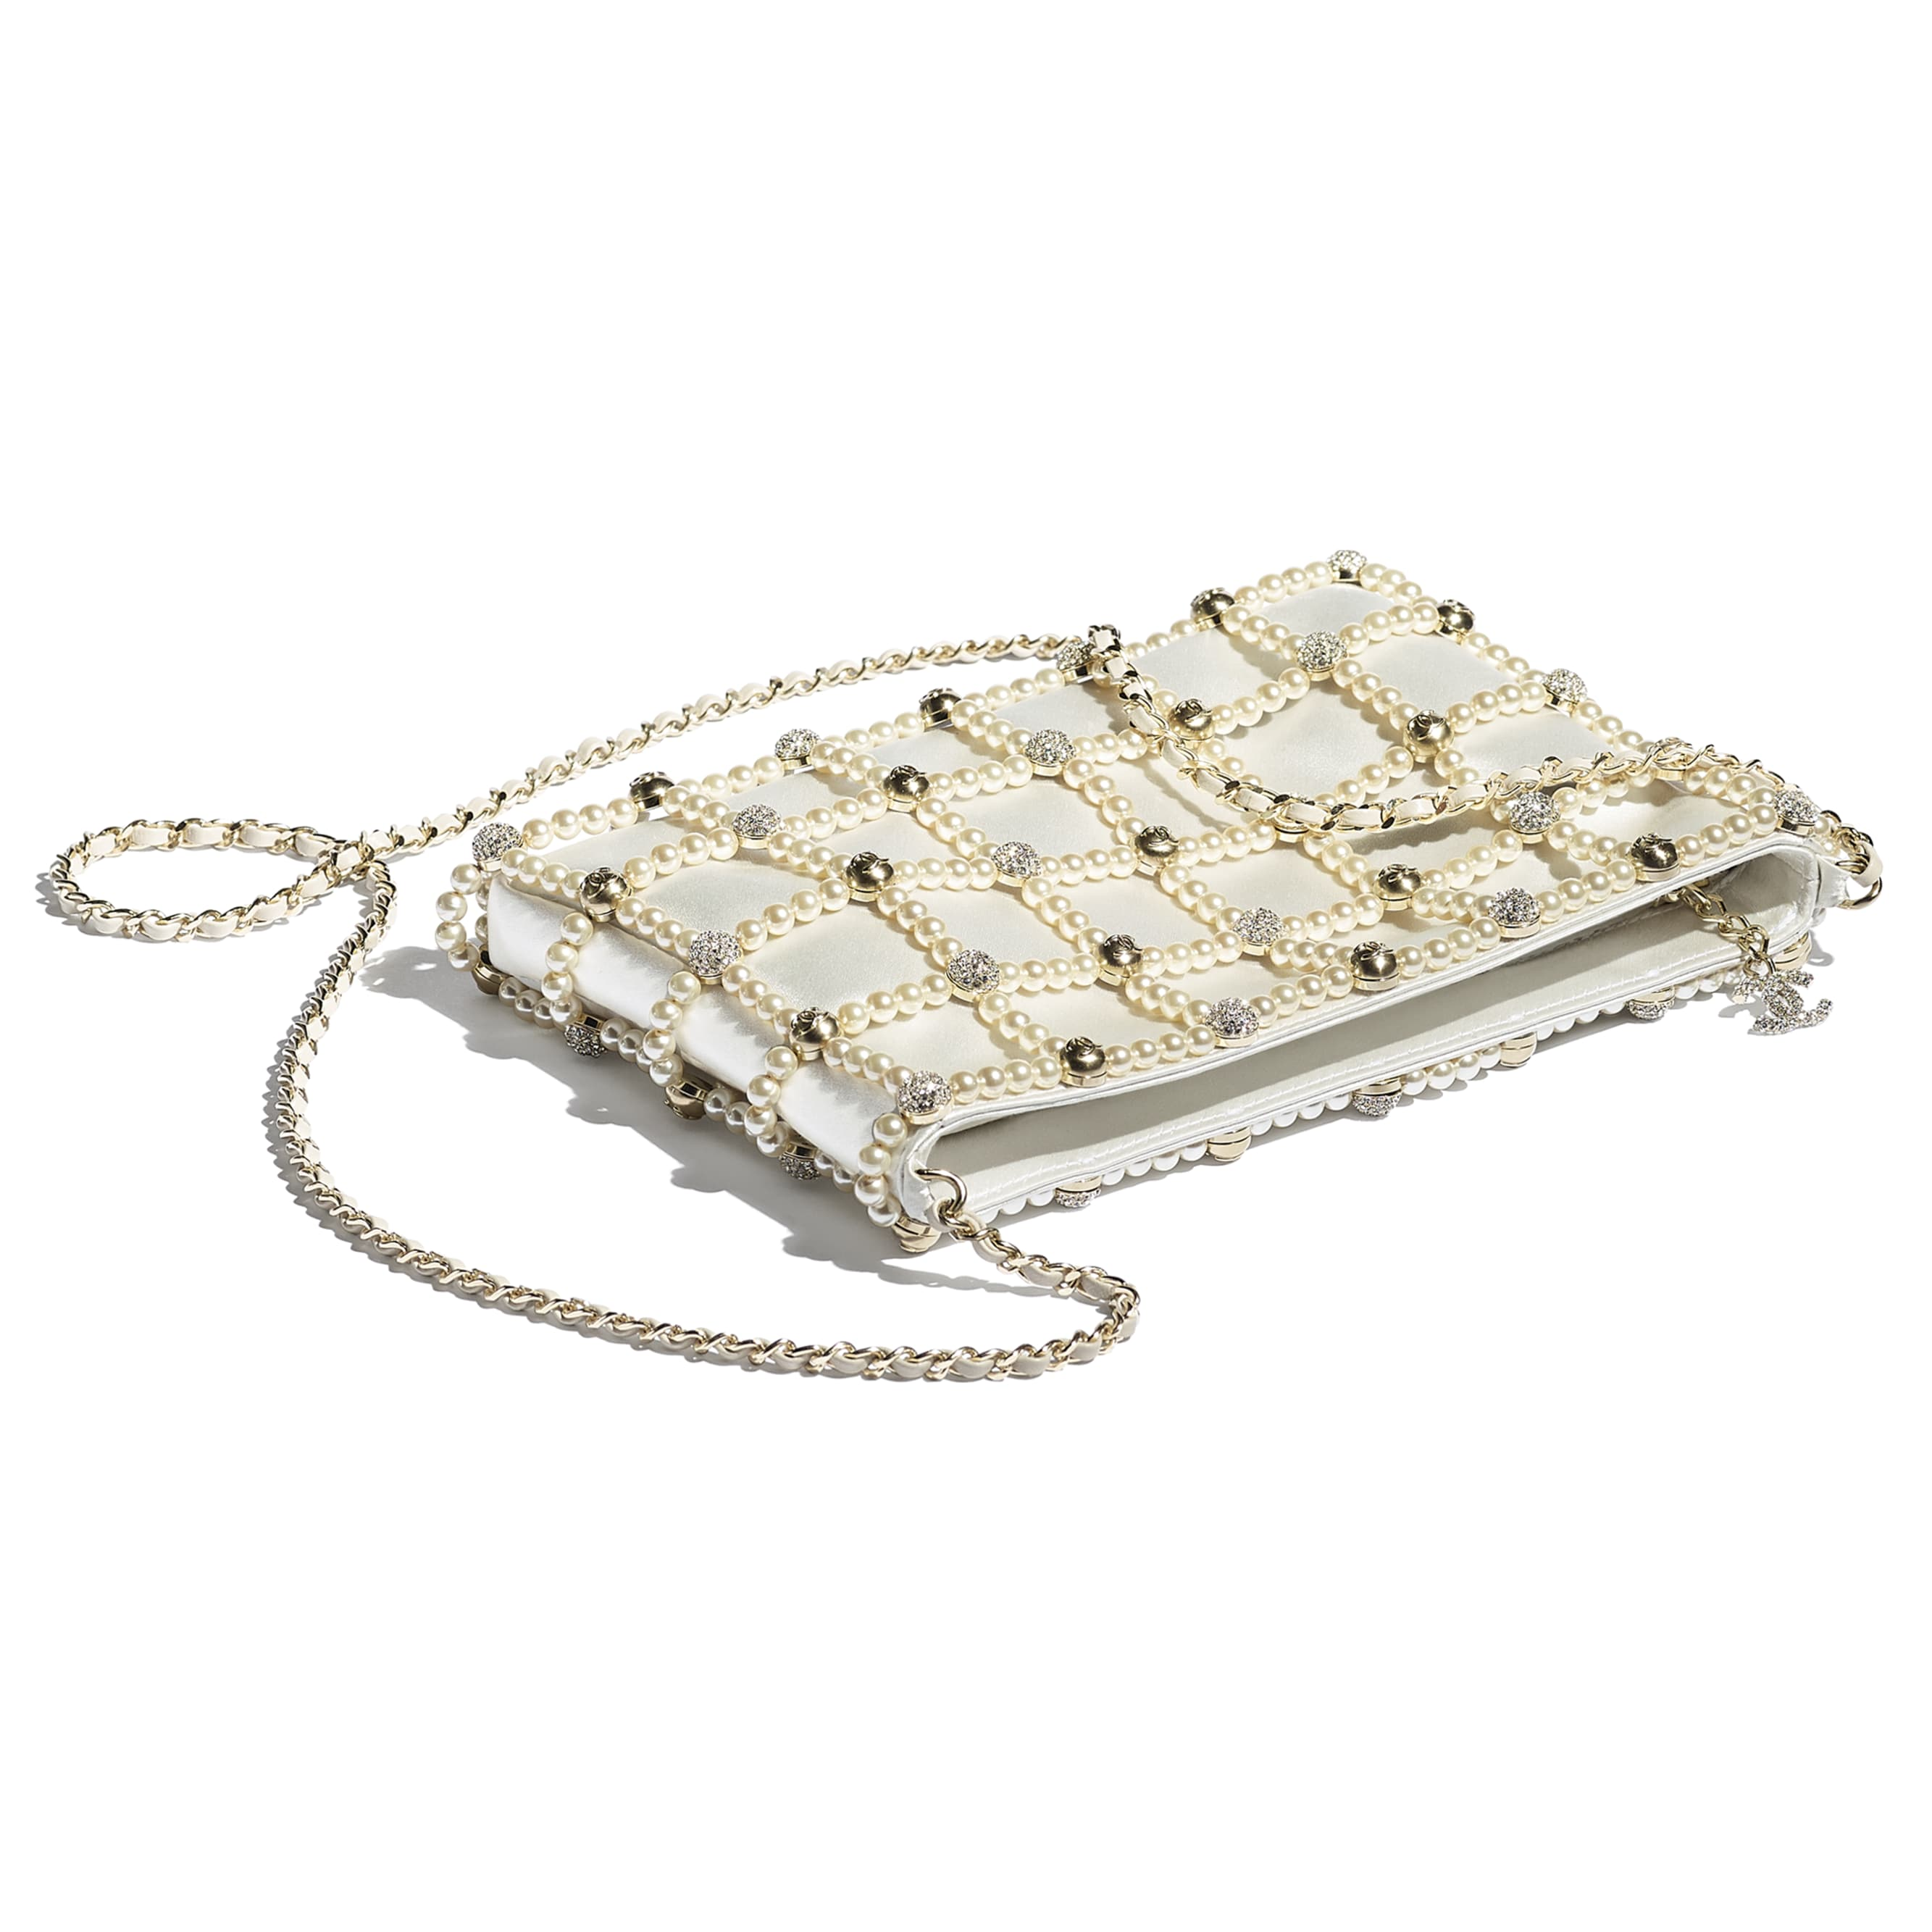 Clutch - White - Satin, Glass Pearls, Diamante & Gold-Tone Metal - CHANEL - Other view - see standard sized version